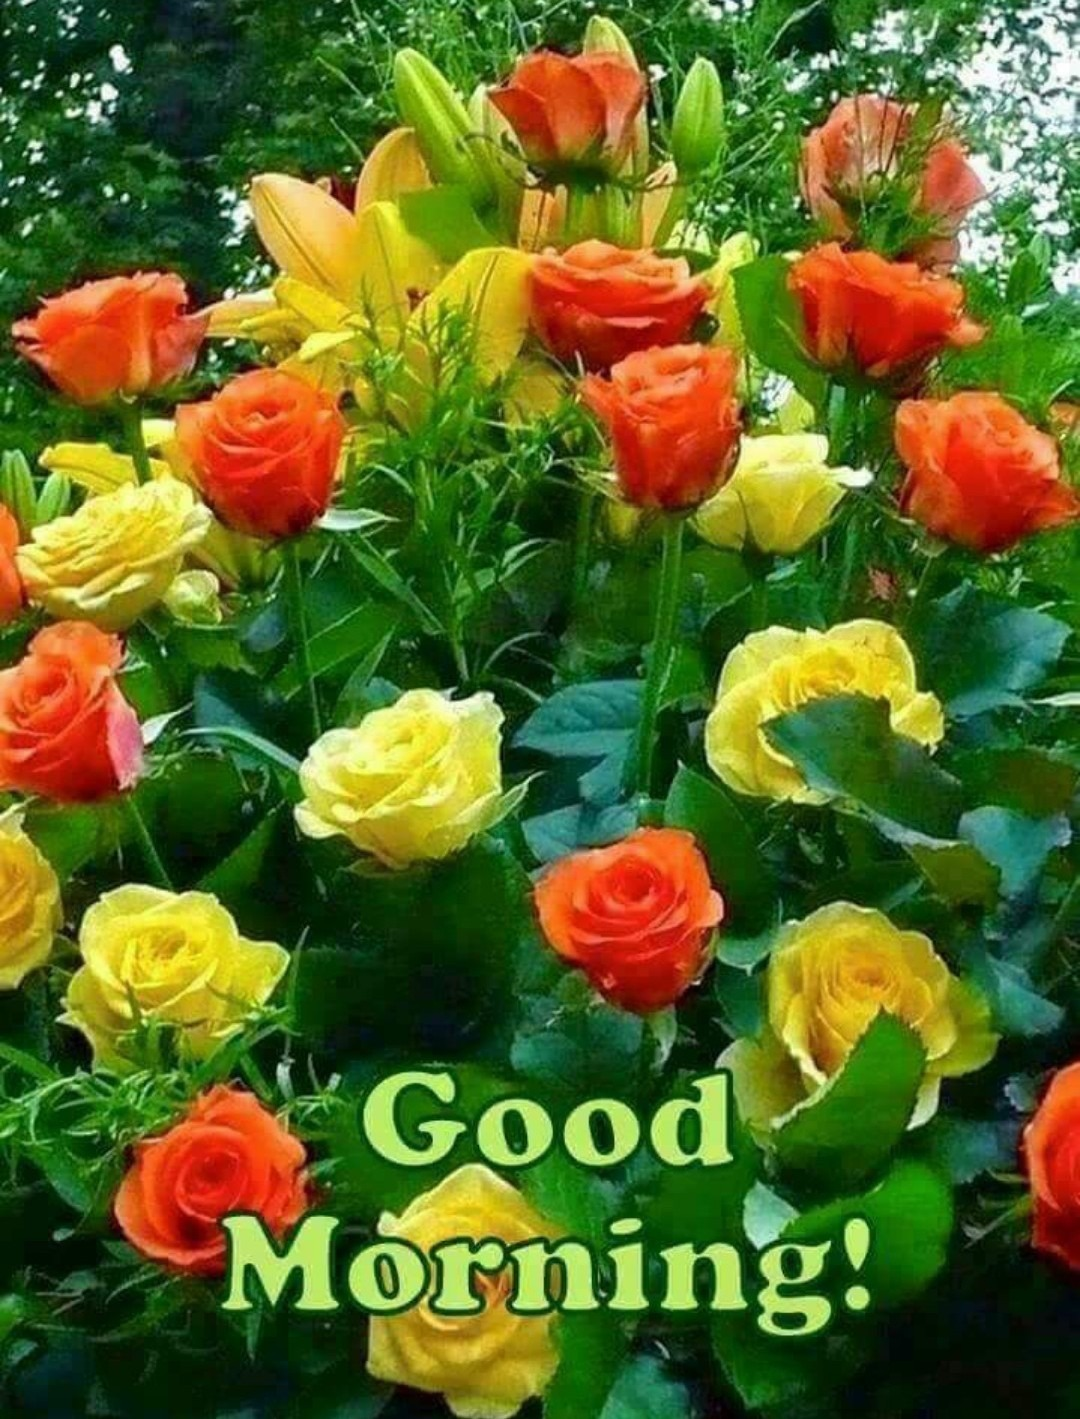 Good Morning With Red And Yellow Roses Desicomments Com